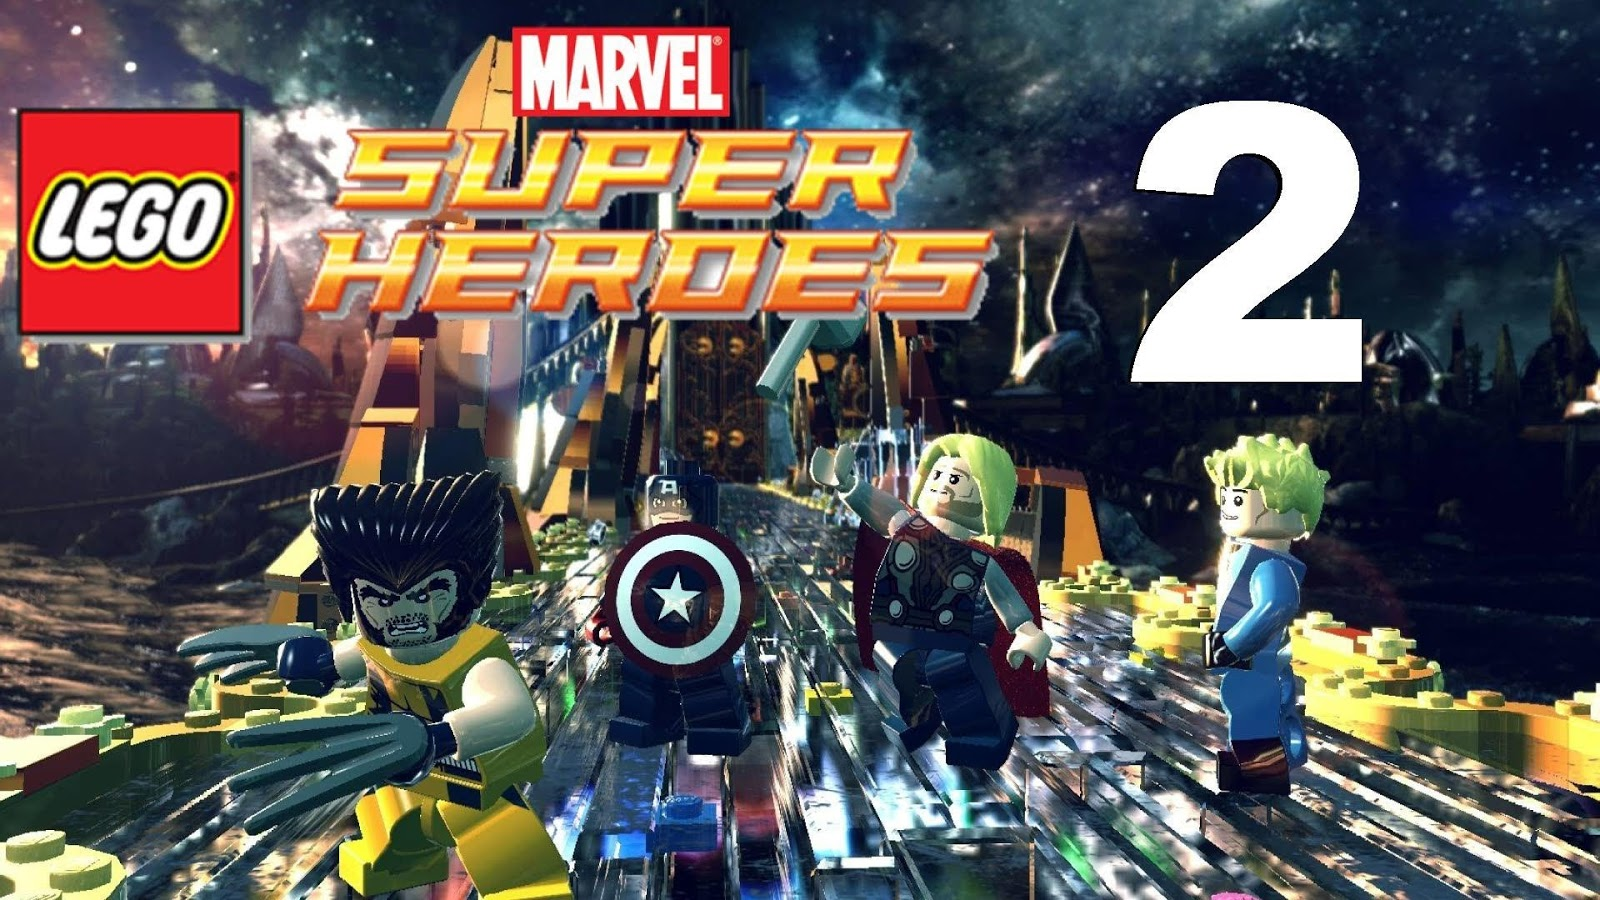 Lego marvel super heroes 2 hd wallpapers read games reviews play lego marvel super heroes 2 cover voltagebd Image collections